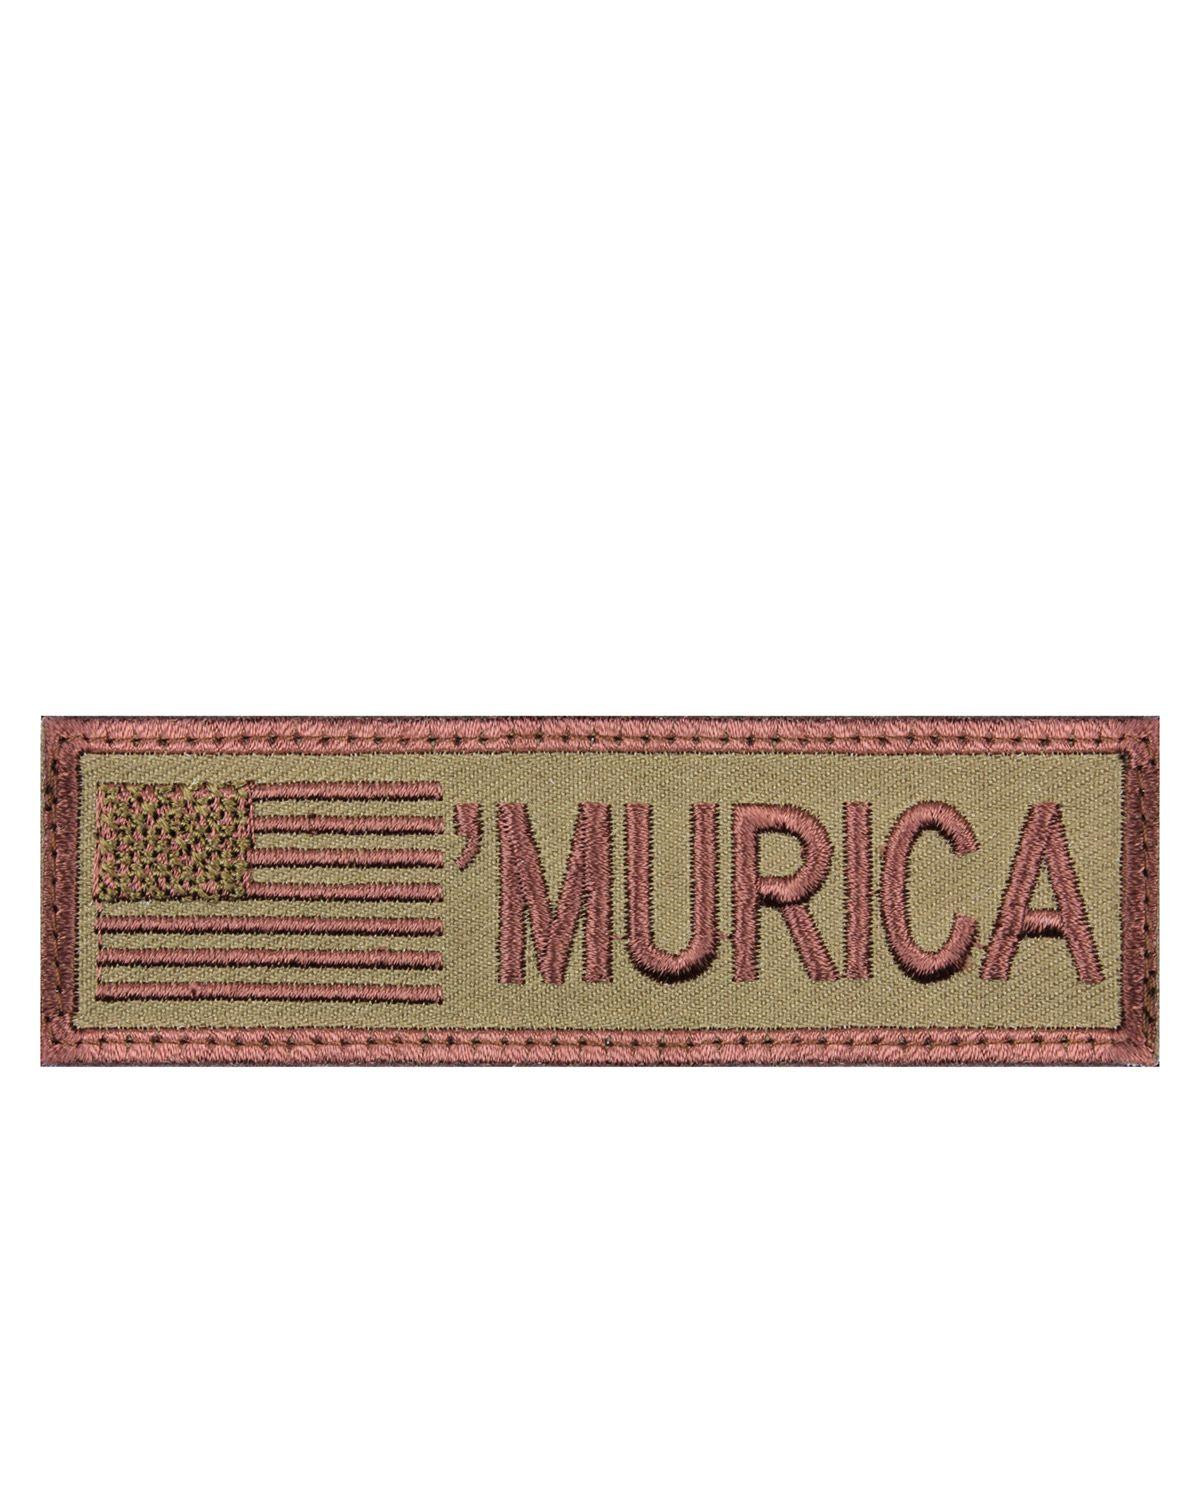 Rothco Patch - 'MURICA' (Khaki, One Size)